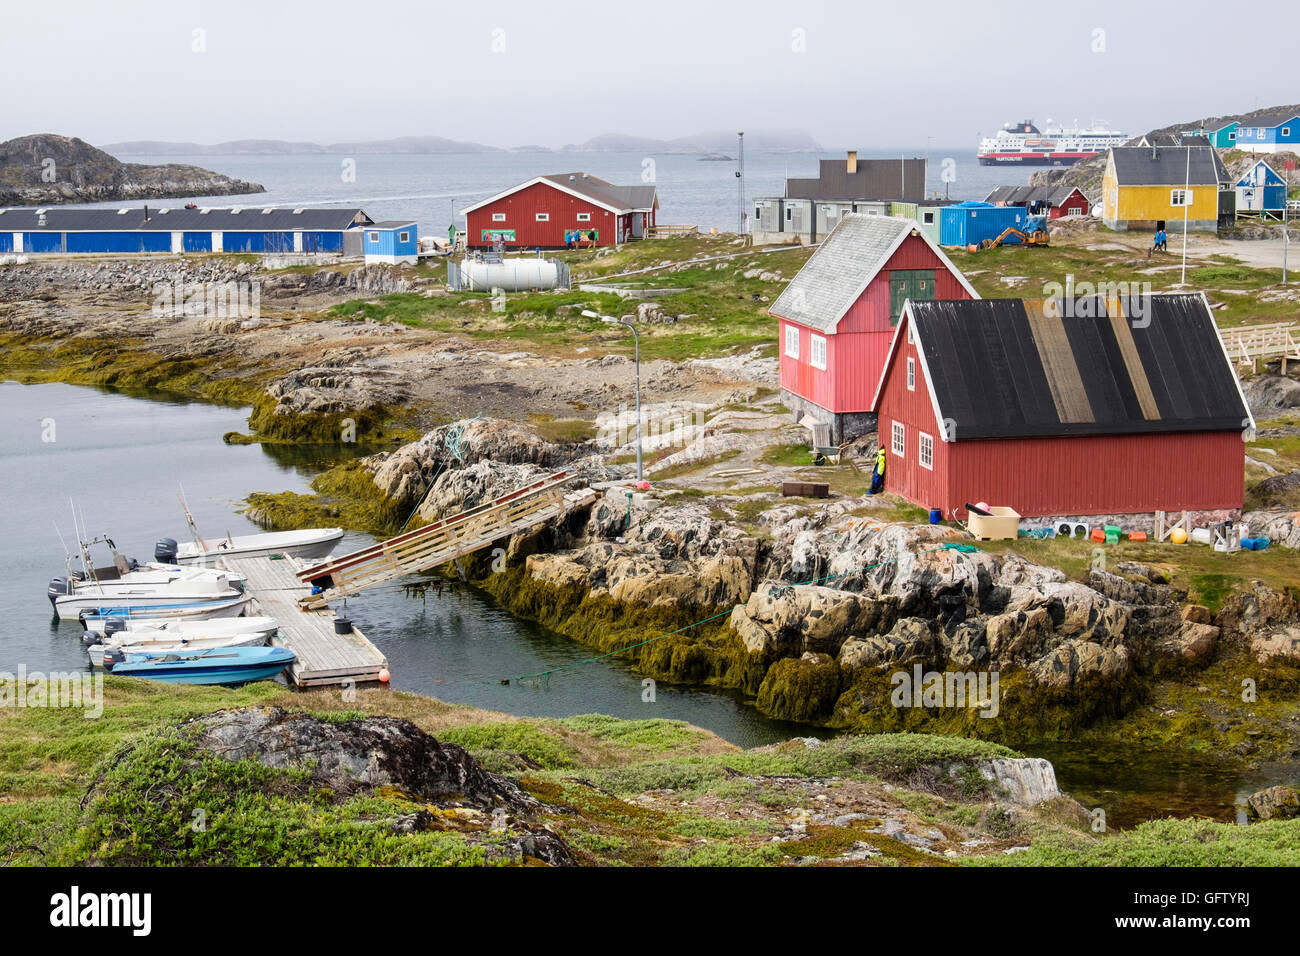 Colourful traditional buildings in small Inuit settlement with visiting cruise ship in fjord on west coast. Itilleq - Stock Image